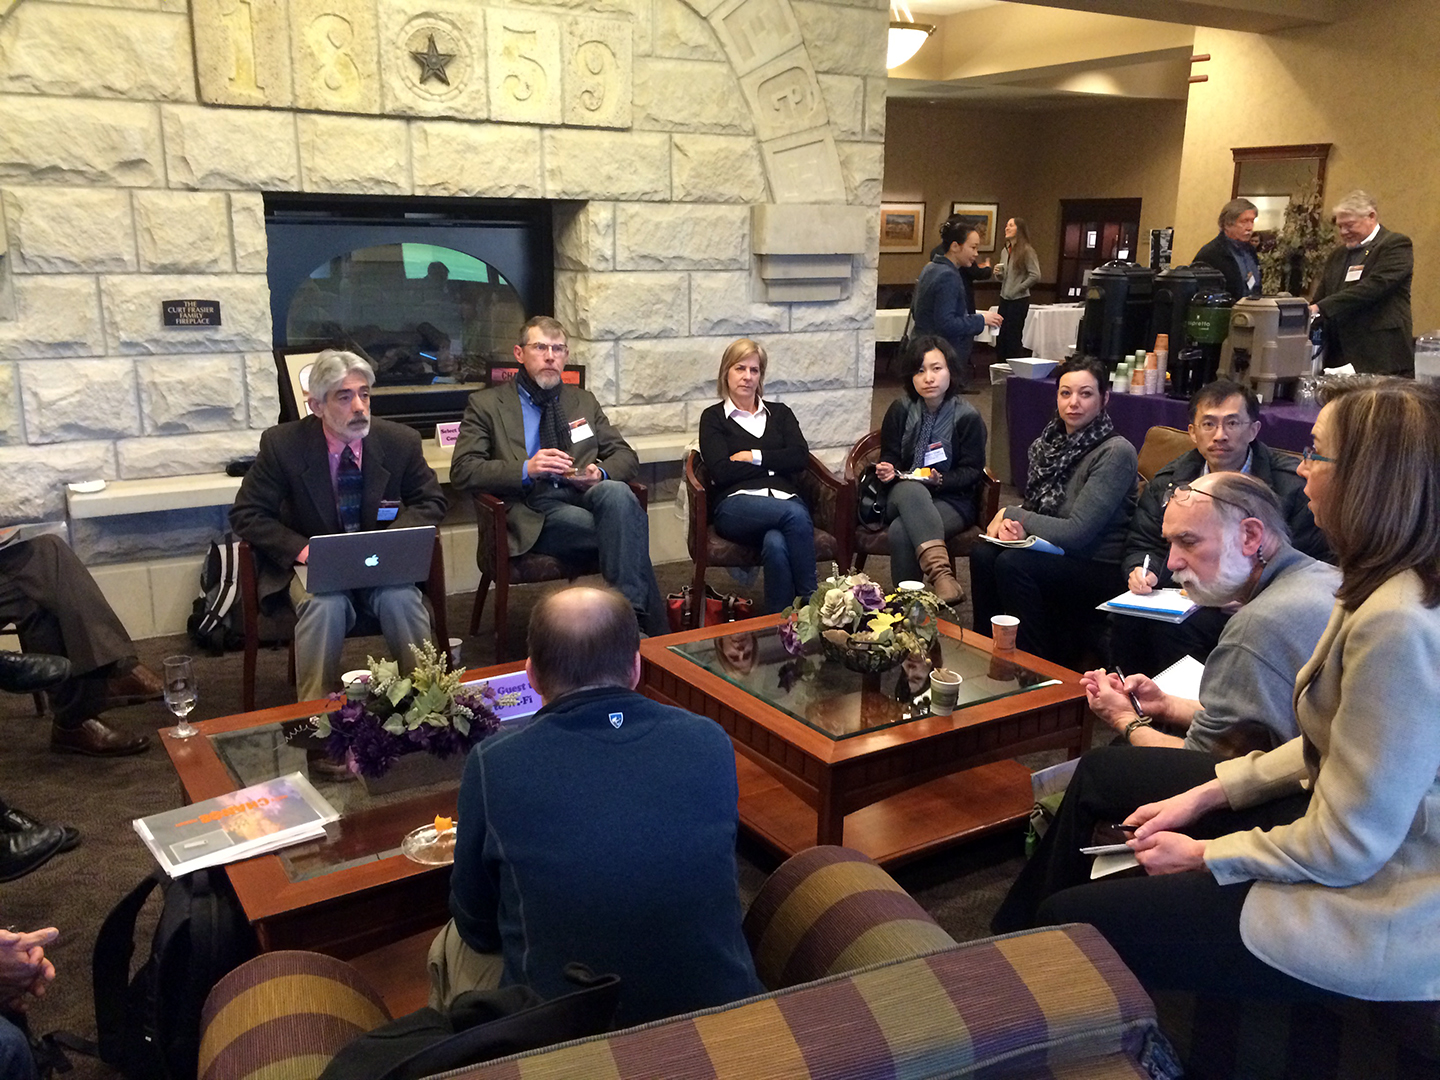 Landscape architecture program department heads from across the country met in the K-State Alumni Center.